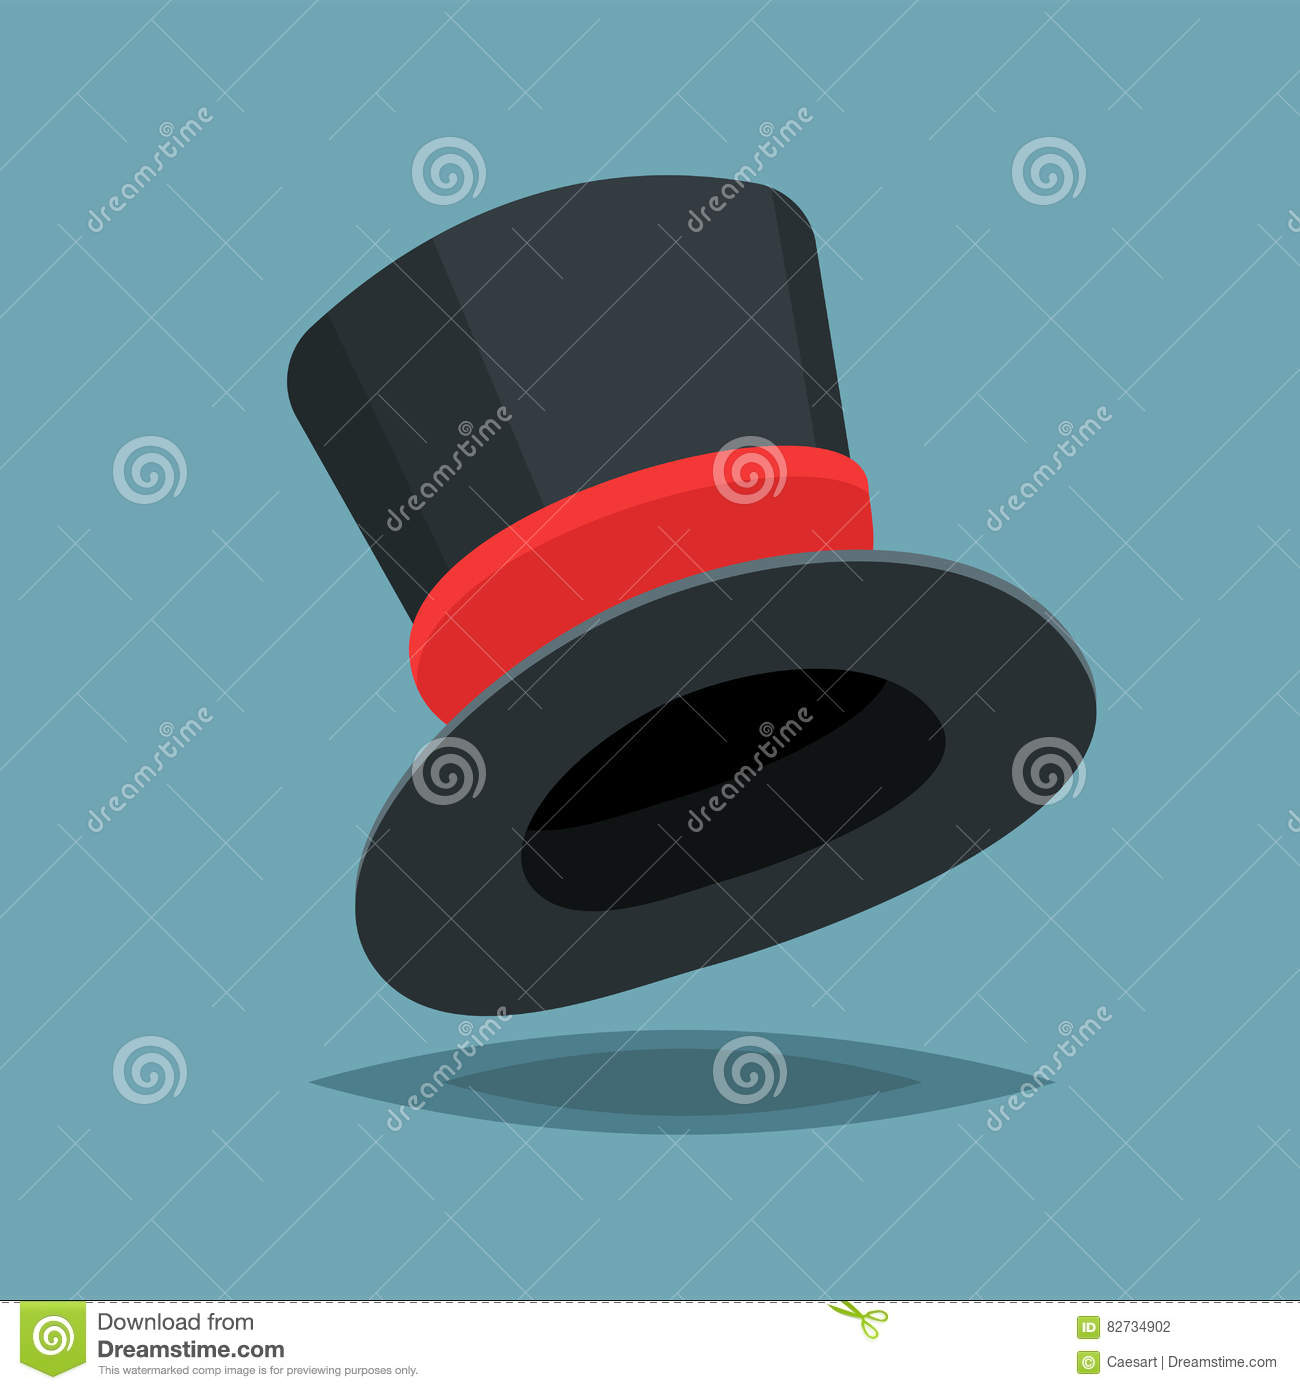 Vintage black gentleman top hat ith red stripe isolated on blue vintage black gentleman top hat ith red stripe isolated on blue background vector flat design cloth illustration biocorpaavc Image collections